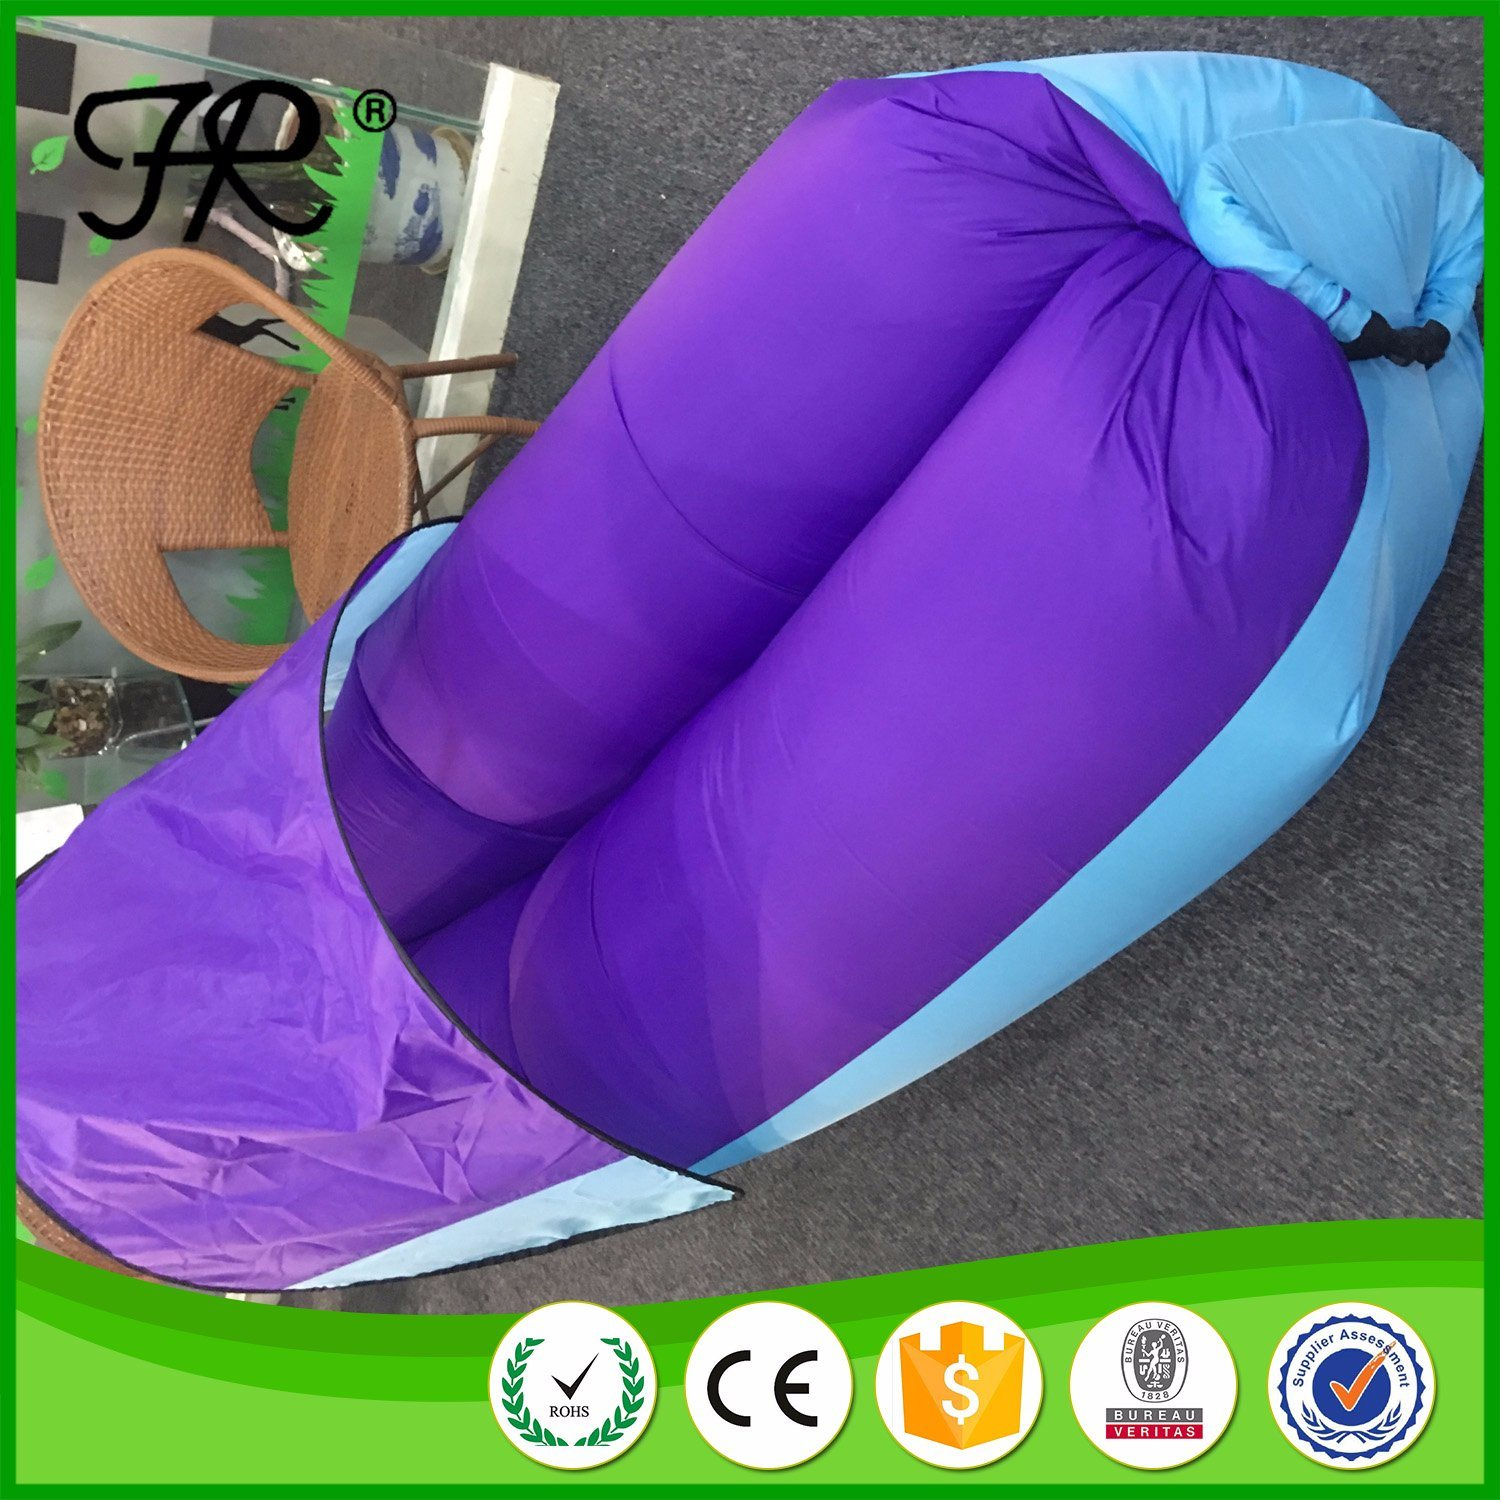 Incredible Hot Item Oem 3 Season Type And Air Filling Inflatable Sofa Bed Pabps2019 Chair Design Images Pabps2019Com